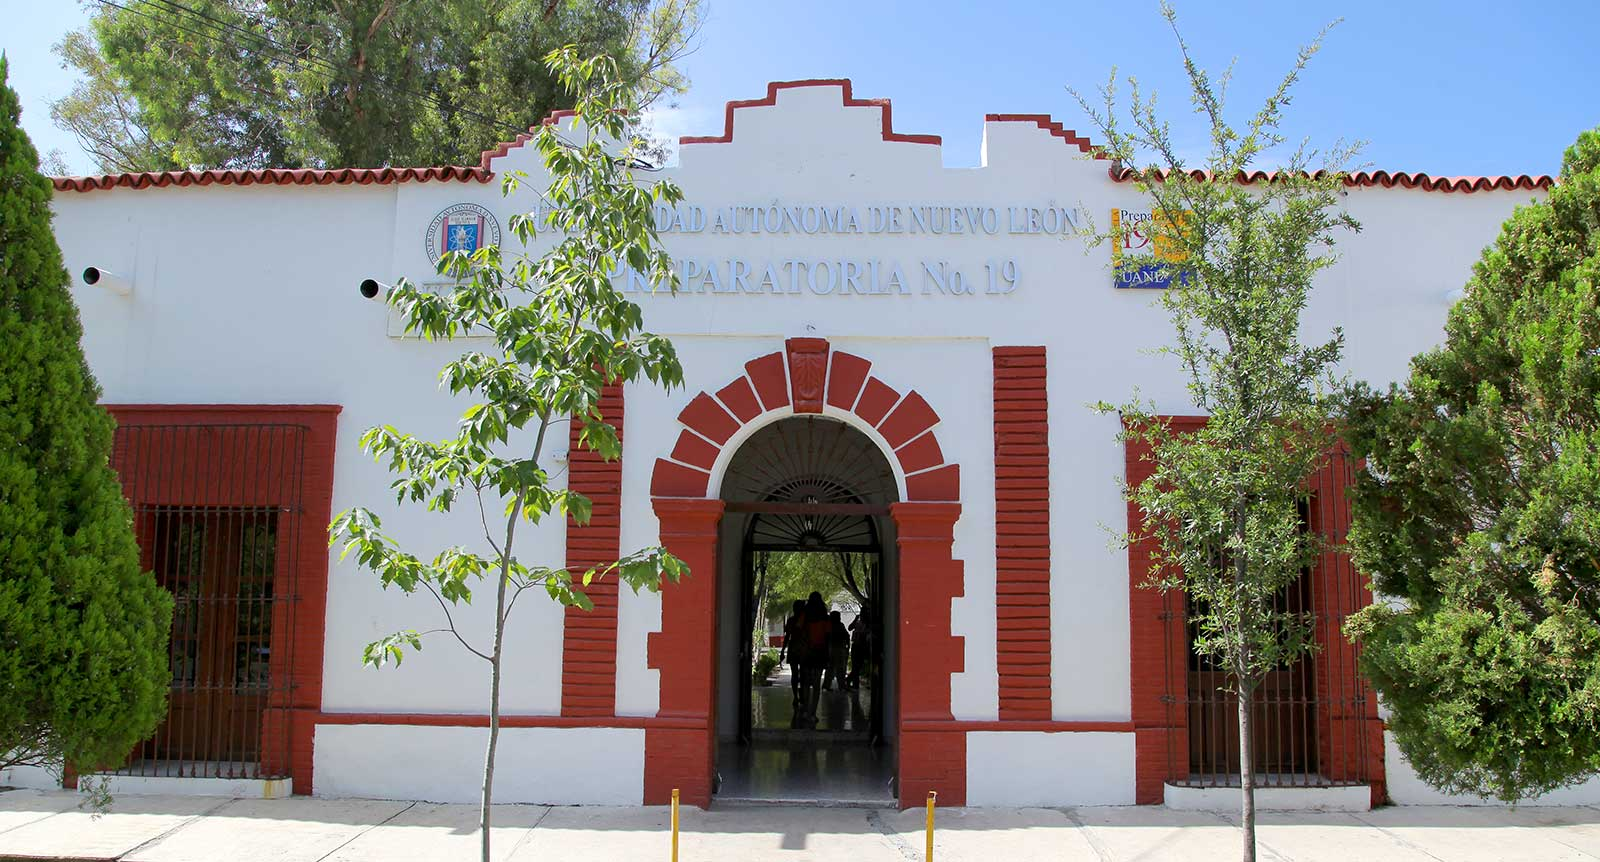 Escuela Preparatoria No. 19 García